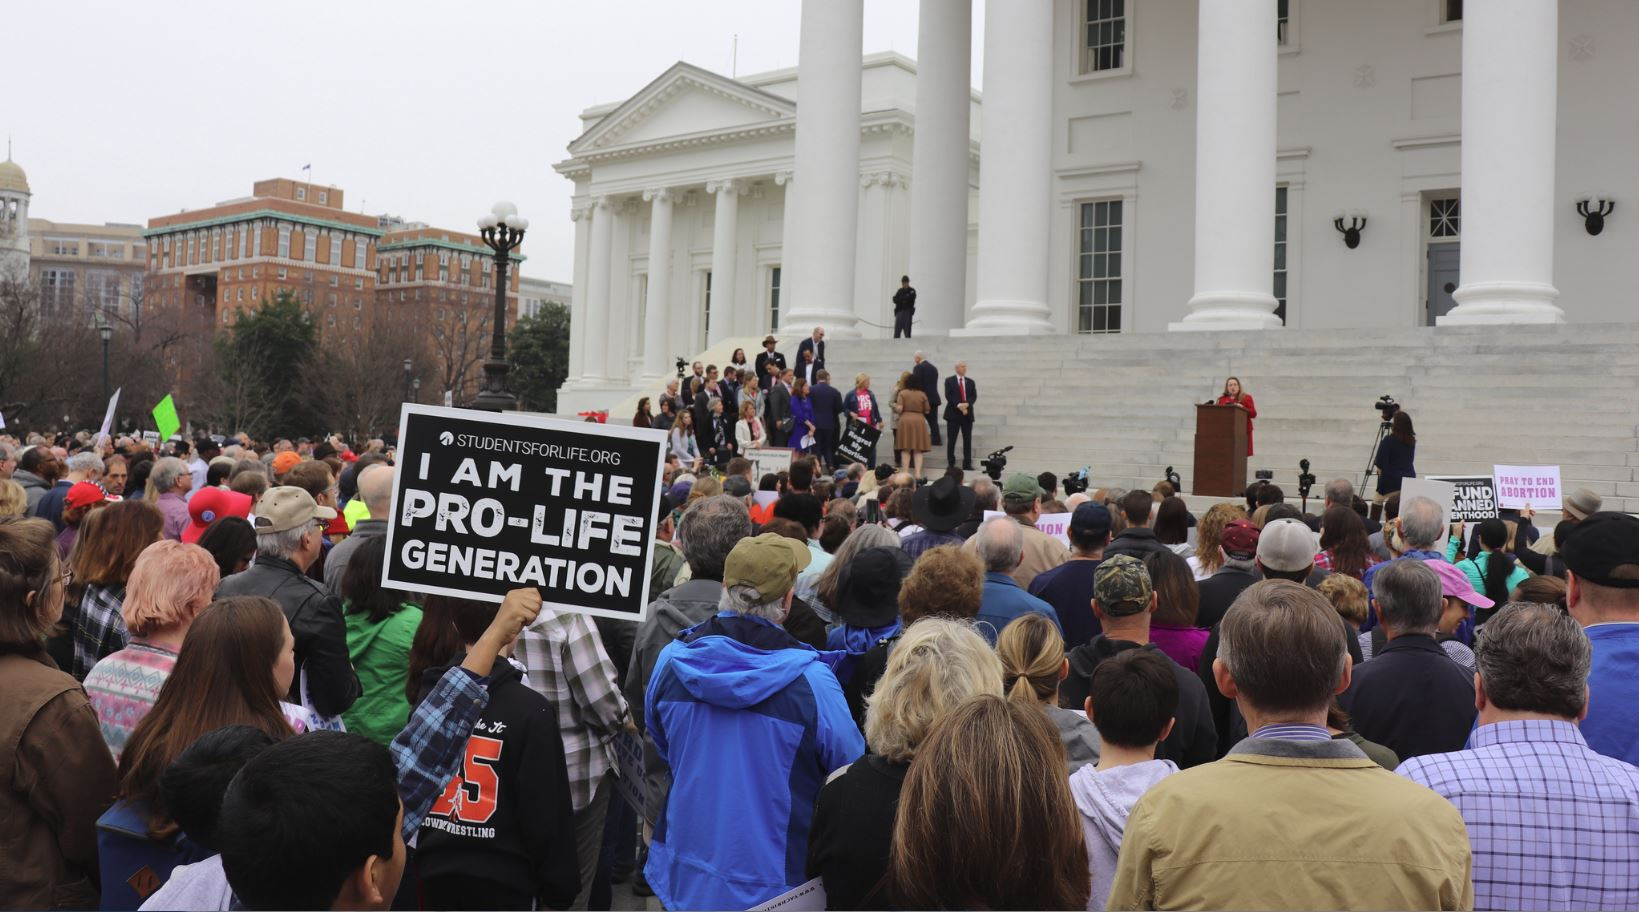 Hundreds of anti-abortion activists rally at Virginia Capitol